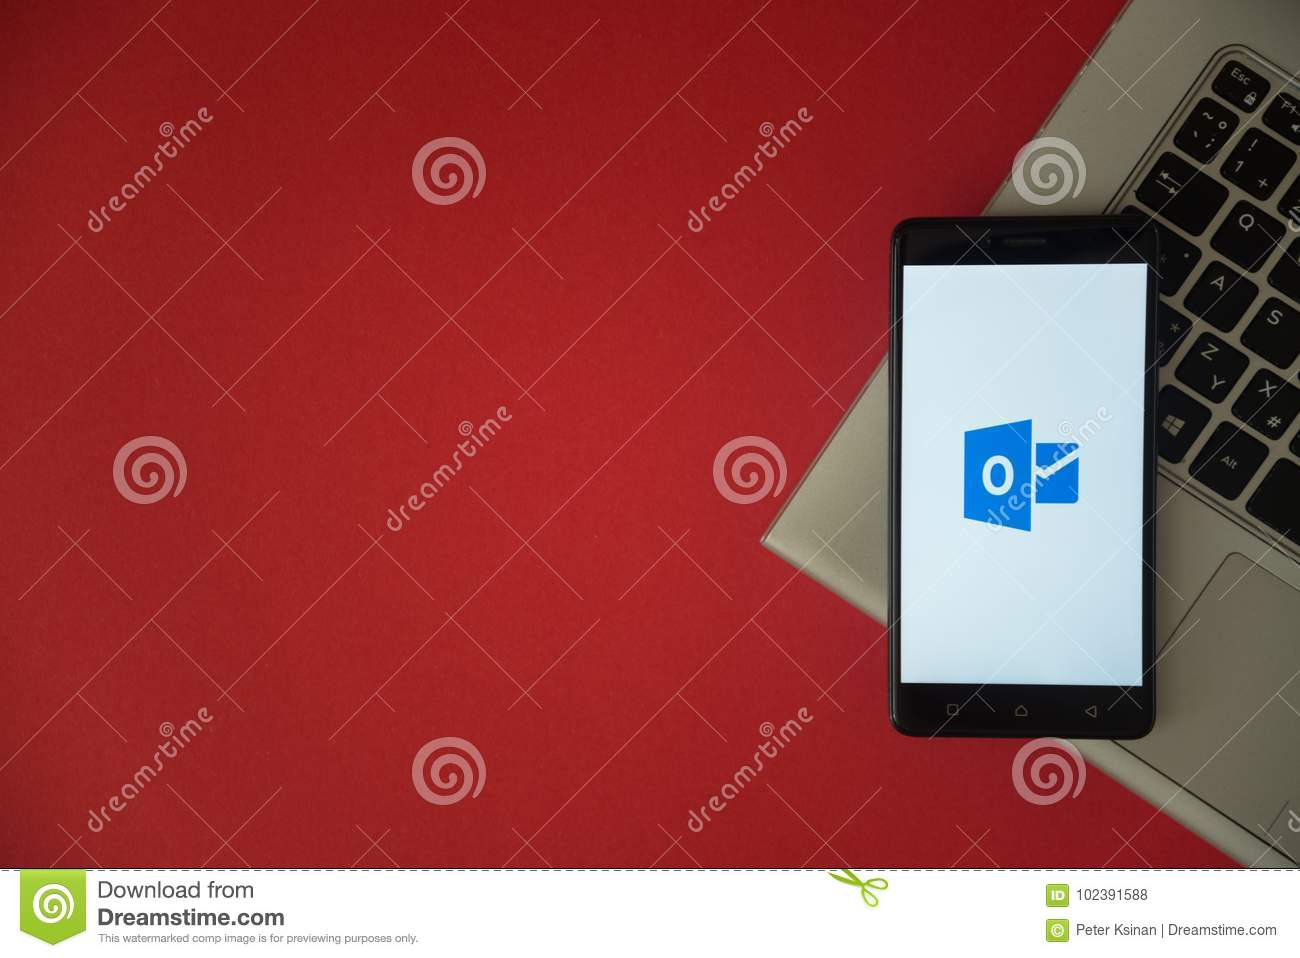 Microsoft Office Outlook Logo On Smartphone Screen Placed On Laptop